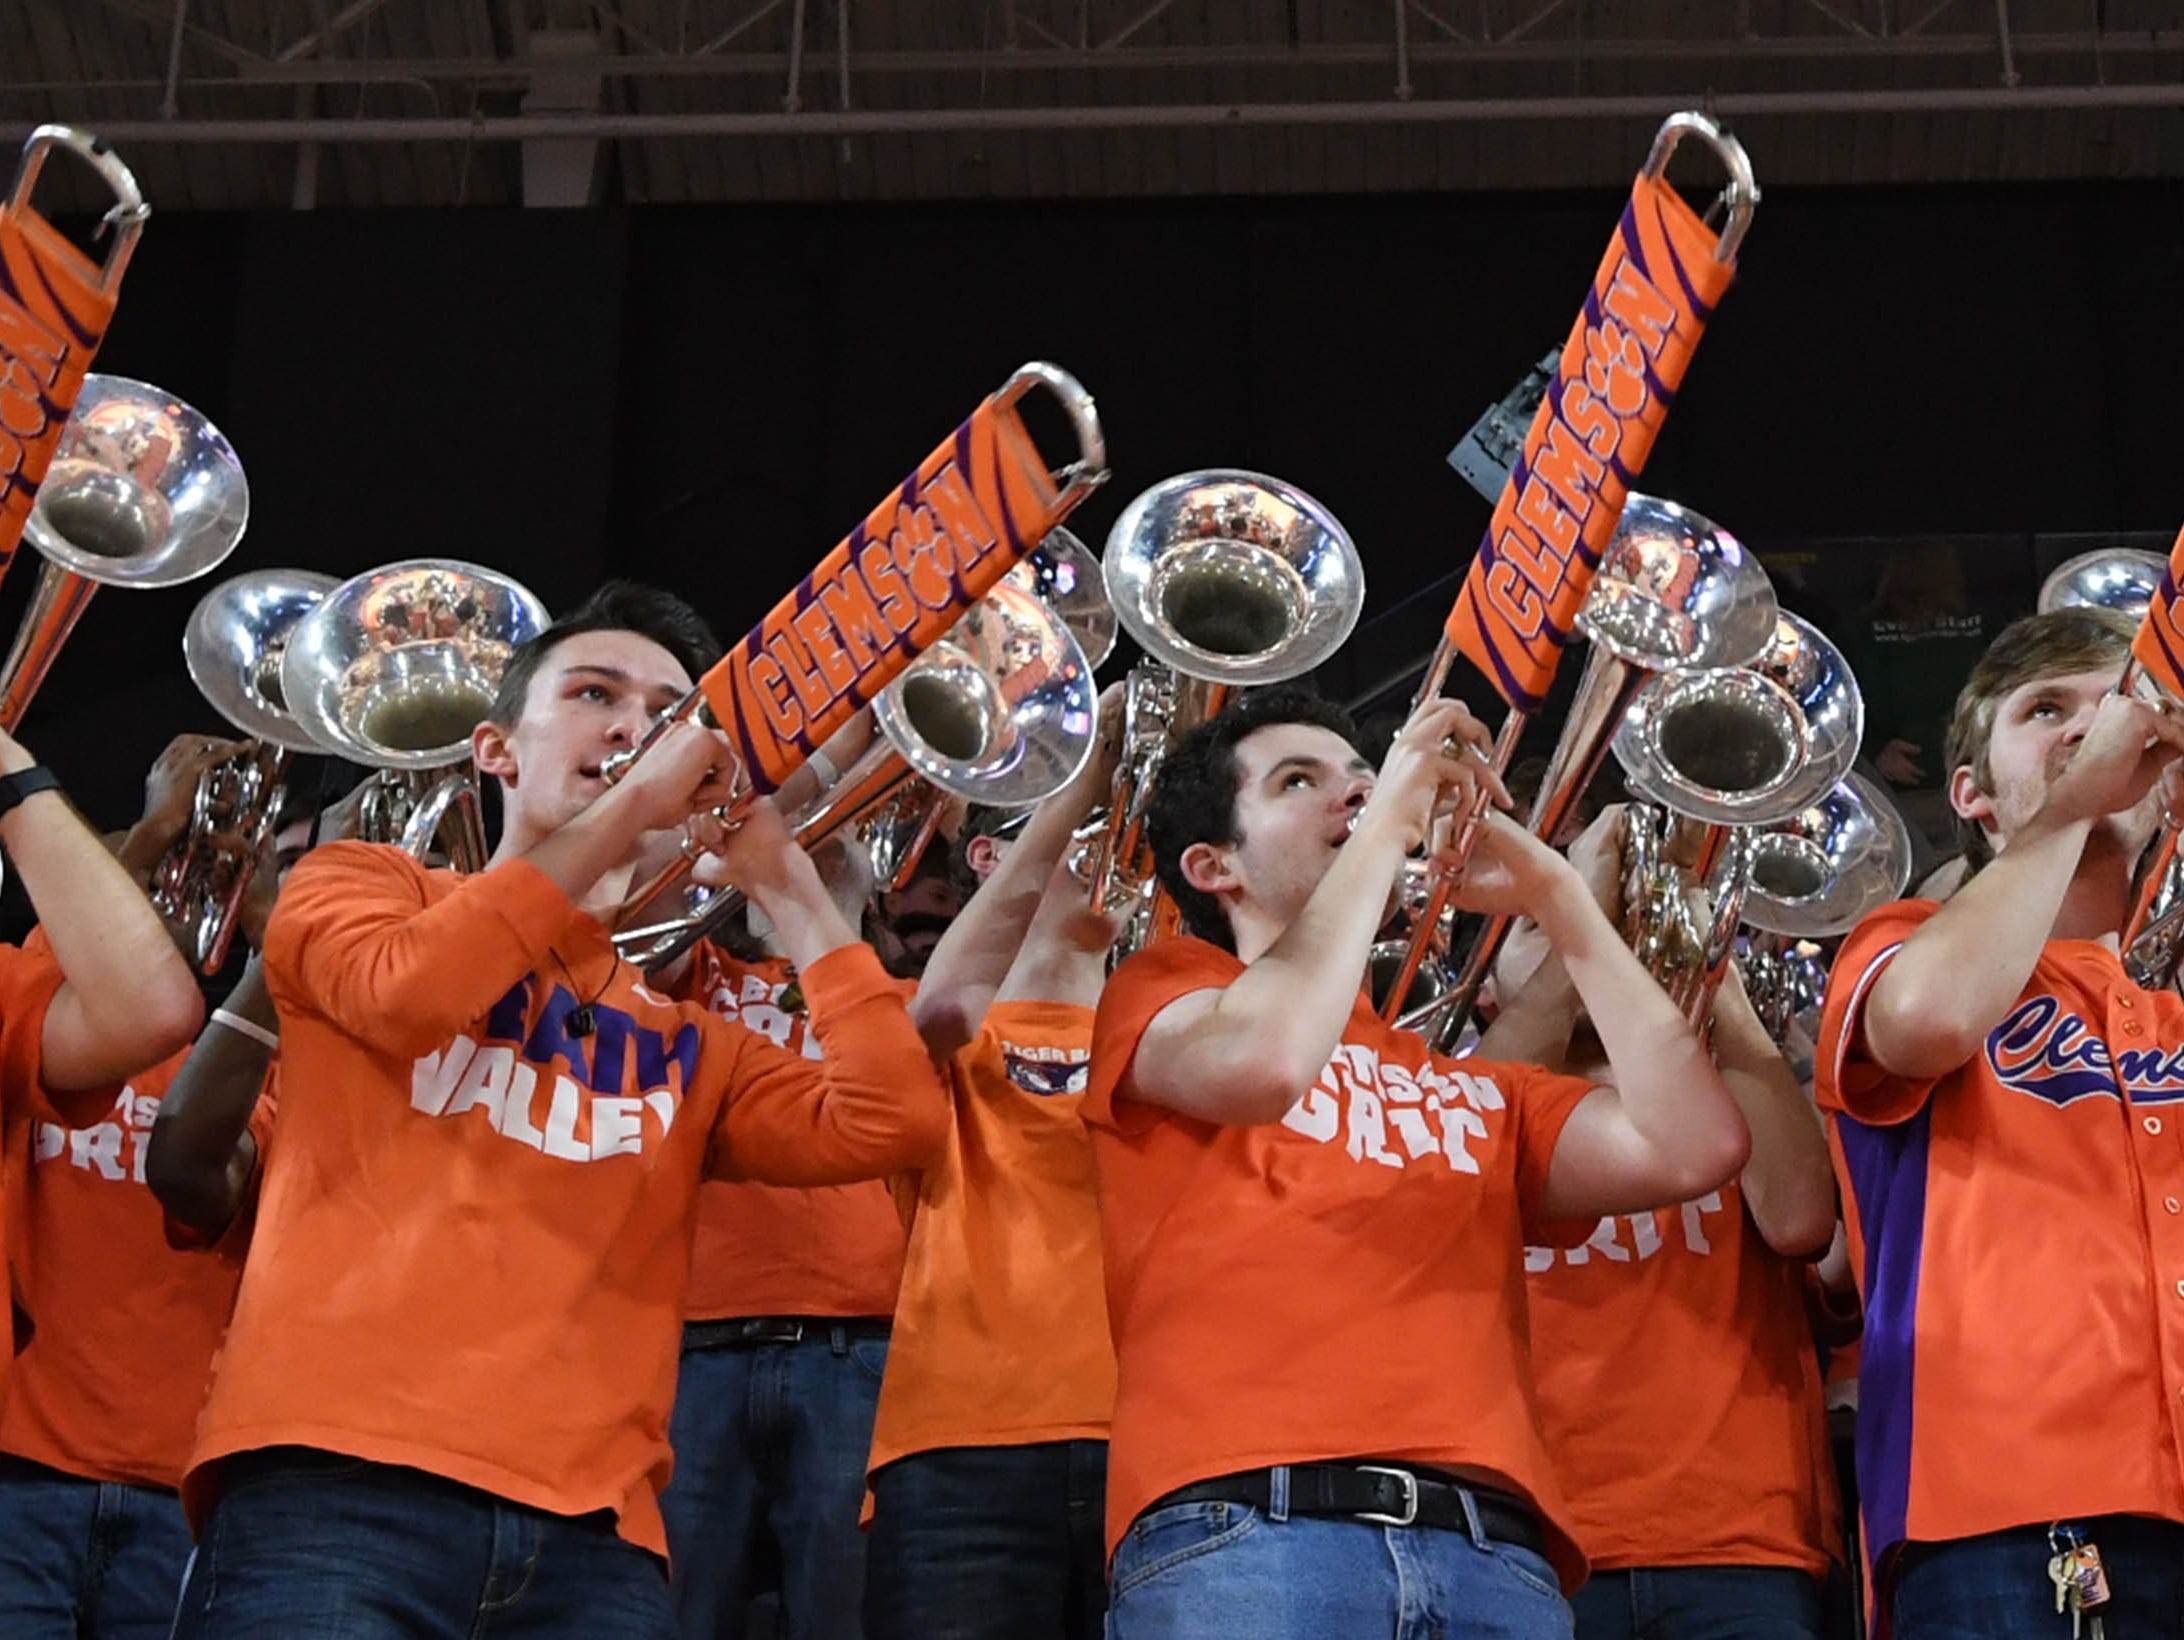 Clemson band plays during the first half at Littlejohn Coliseum in Clemson Saturday, March 9, 2019.